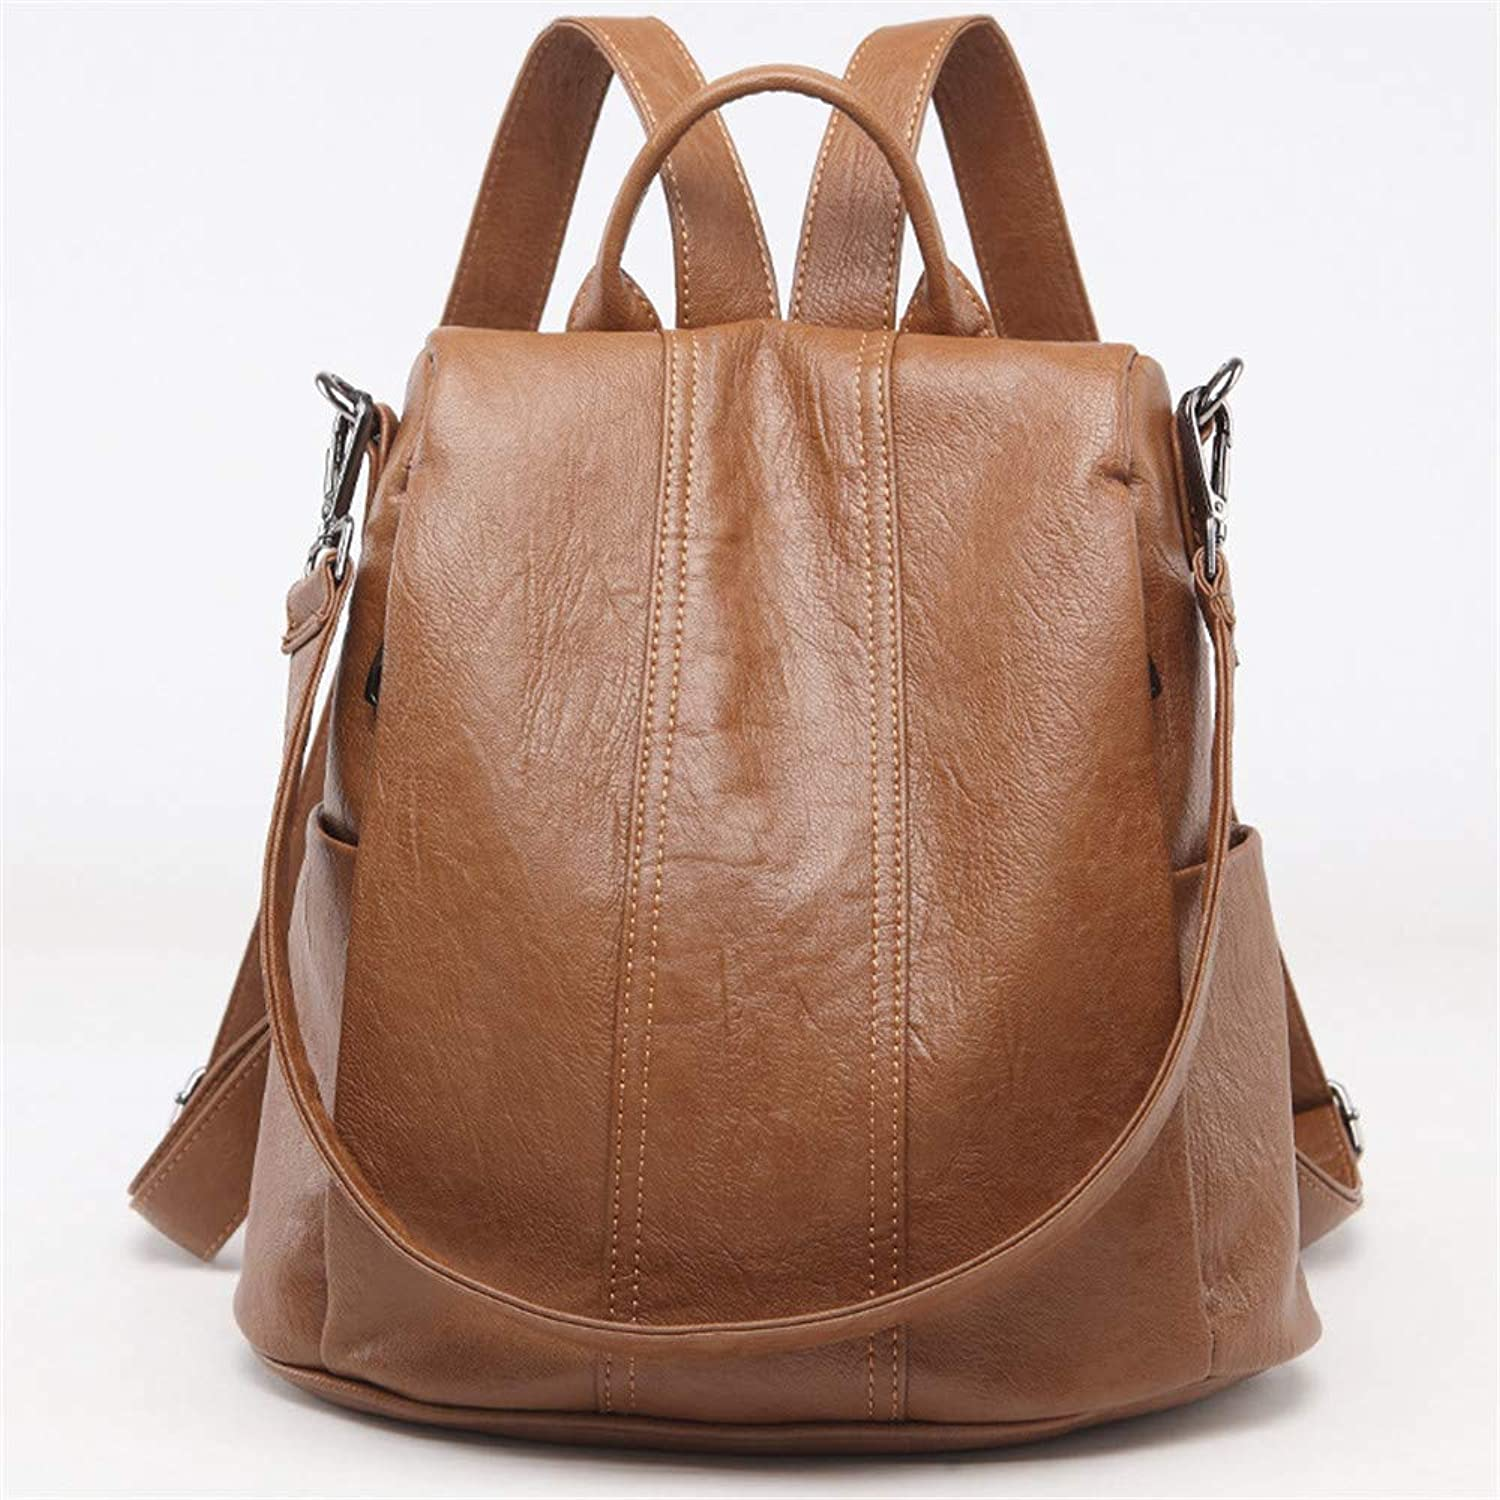 Women Fashion Backpacks Women Backpack WaterRepellent Bag Fashion School Backpack for Travel (color   Brown)